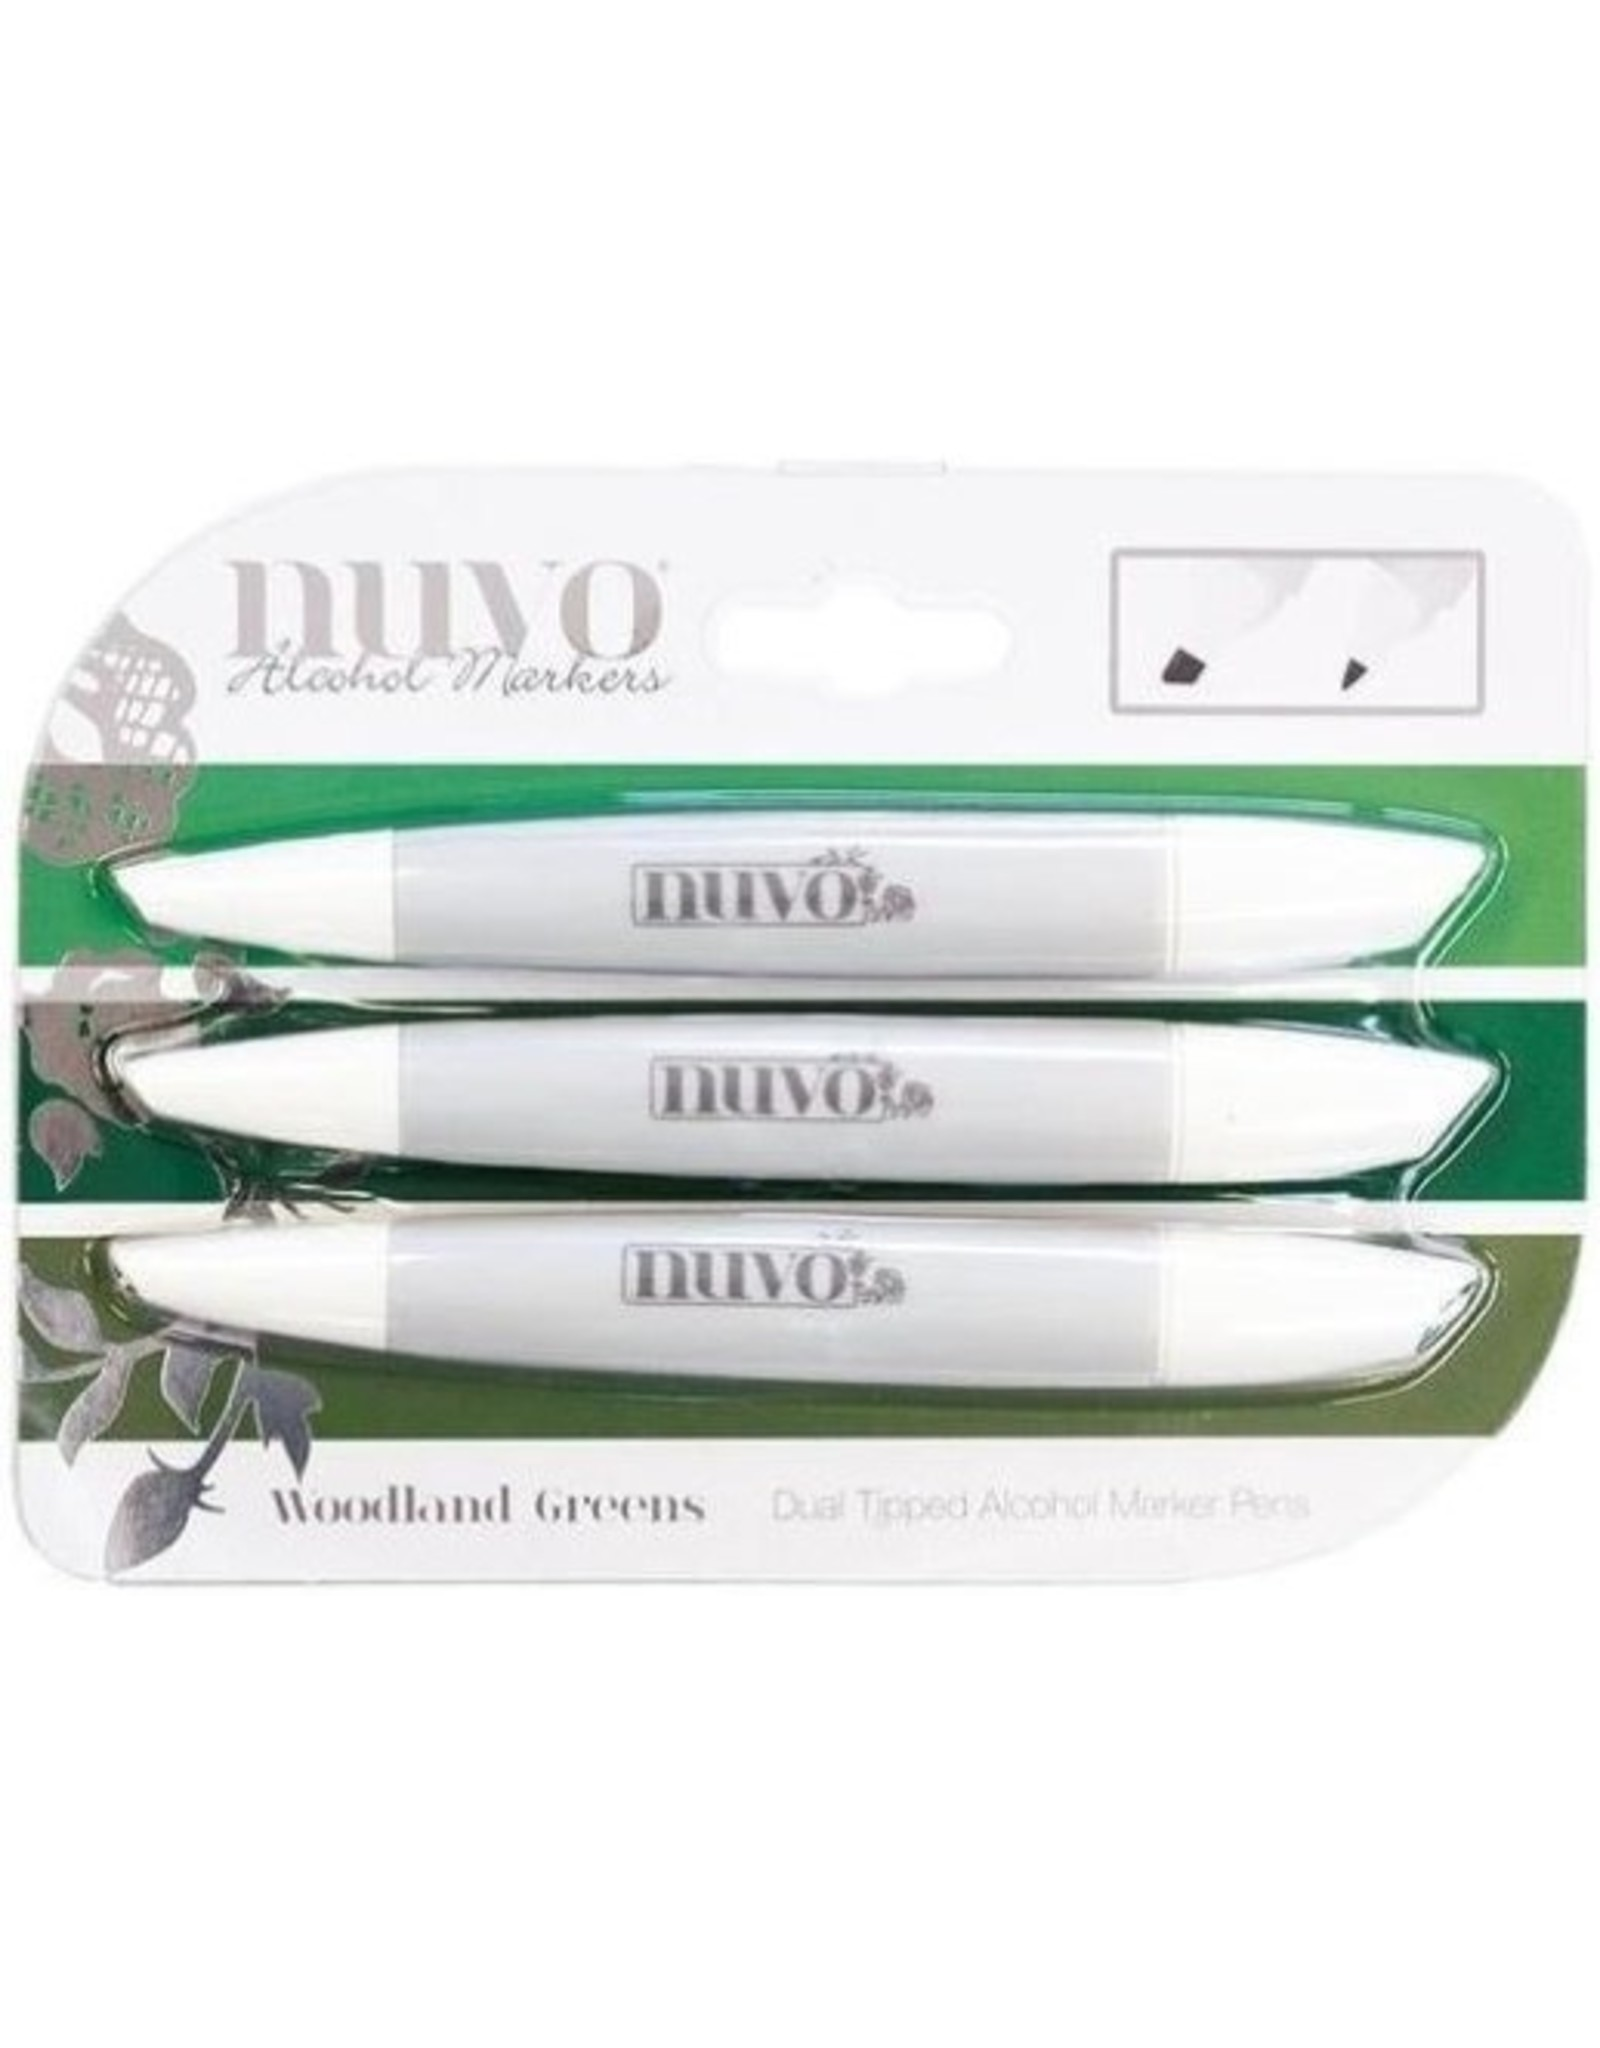 Tonic Studio Nuvo Alcohol Marker Pen Collection - Woodland Greens